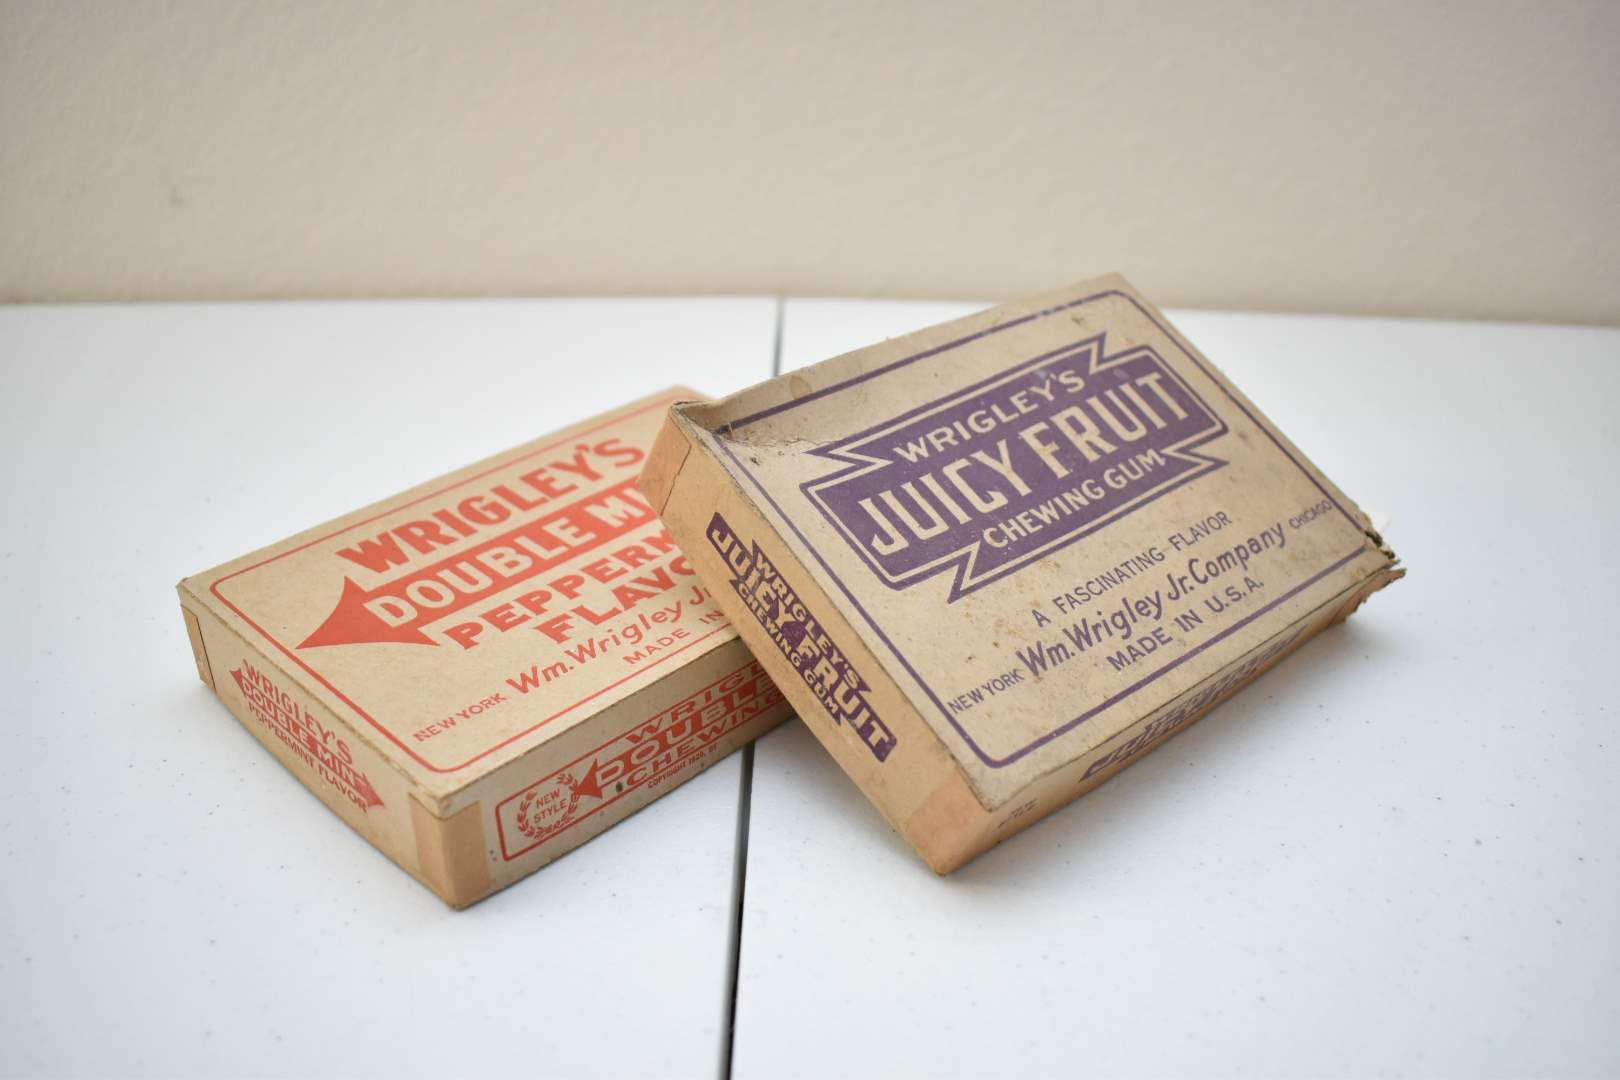 Antique Wrigley's Gum Boxes from 1931